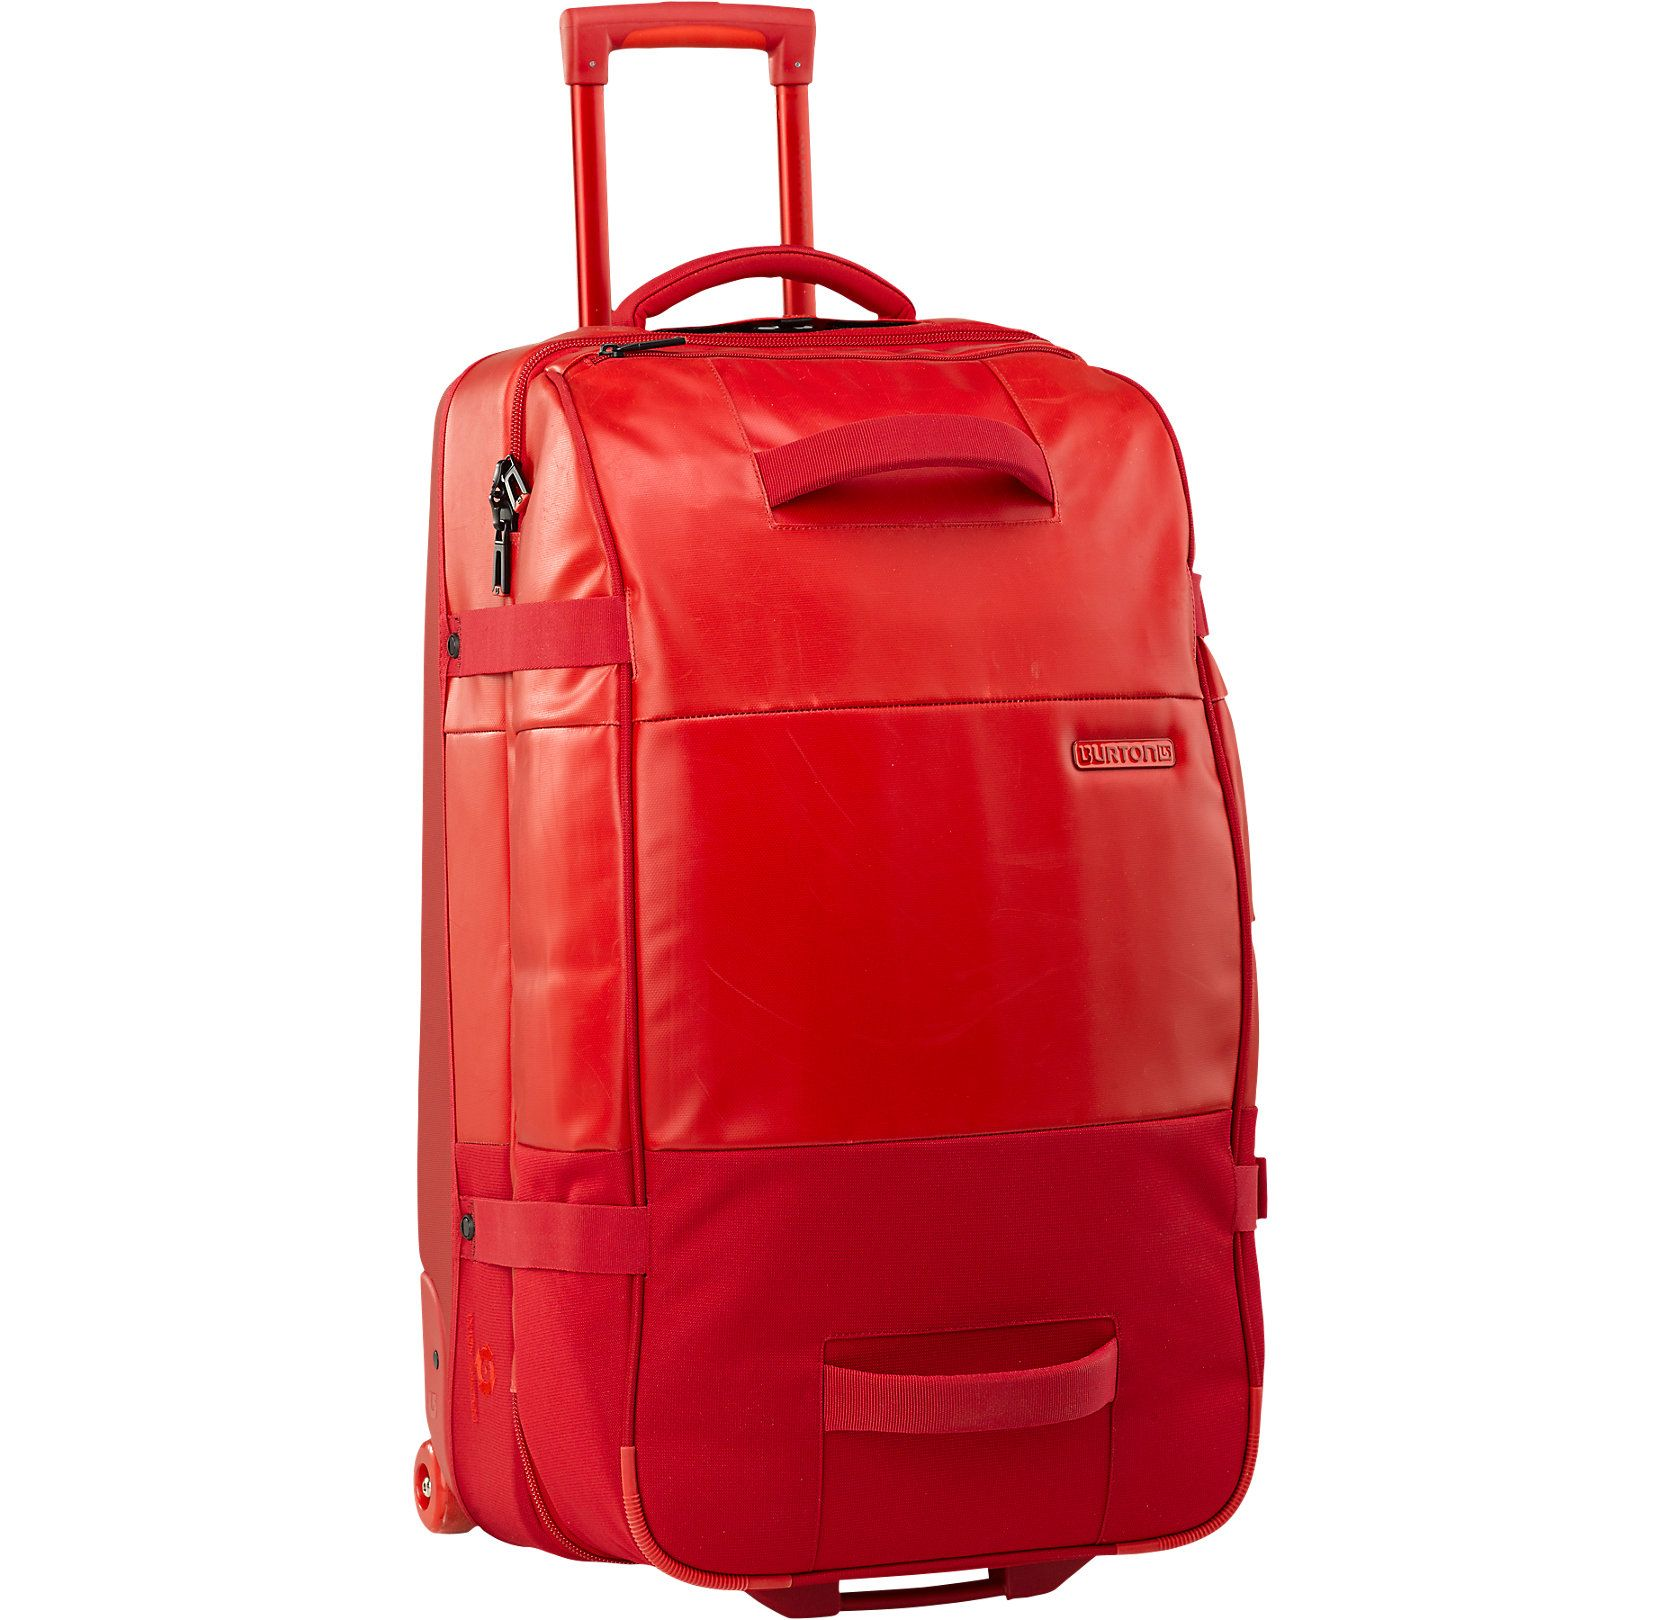 Burton Wheelie Double Deck Travel Bag in red $289.95 | Travel ...